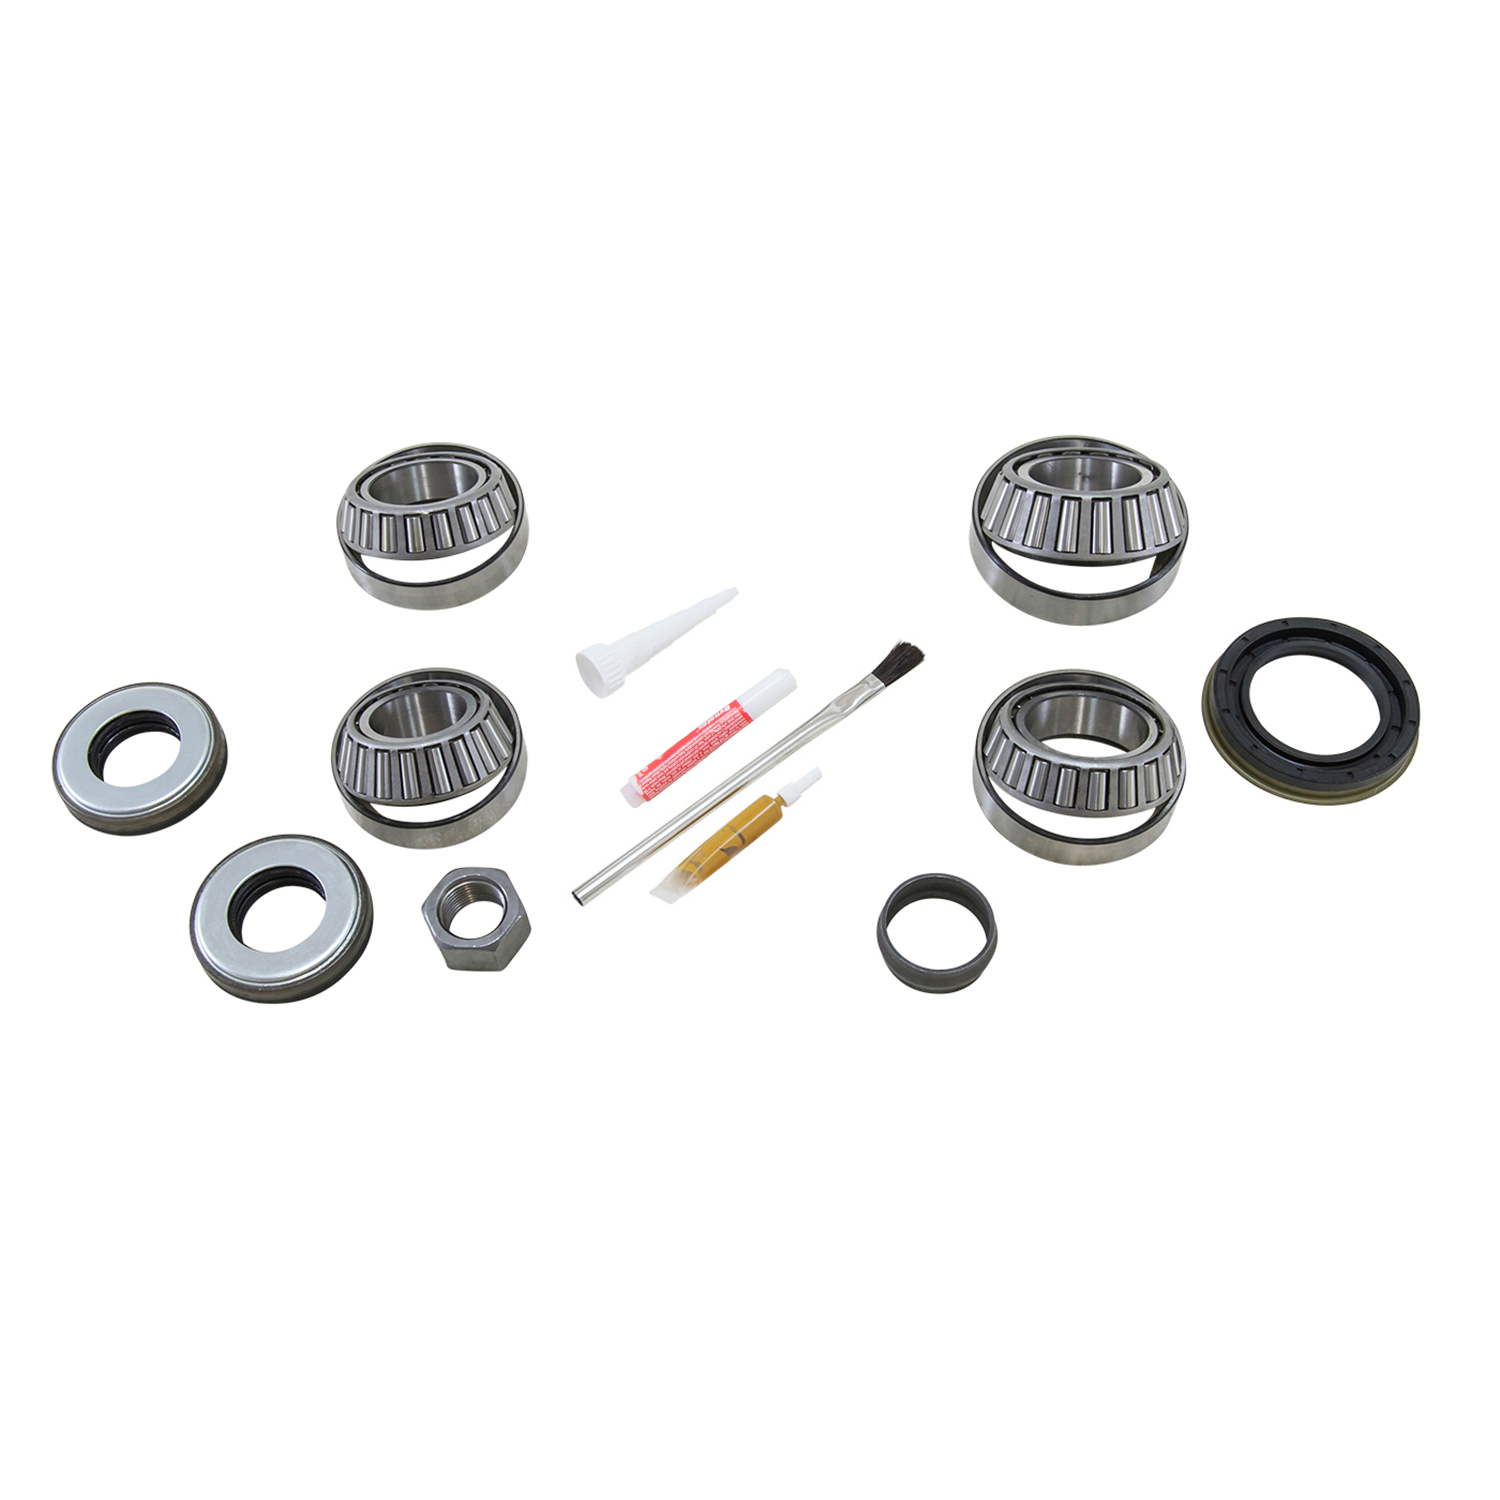 ZBKGM8.25IFS-B - USA Standard Bearing kit for  '99-'13 GM 8.25